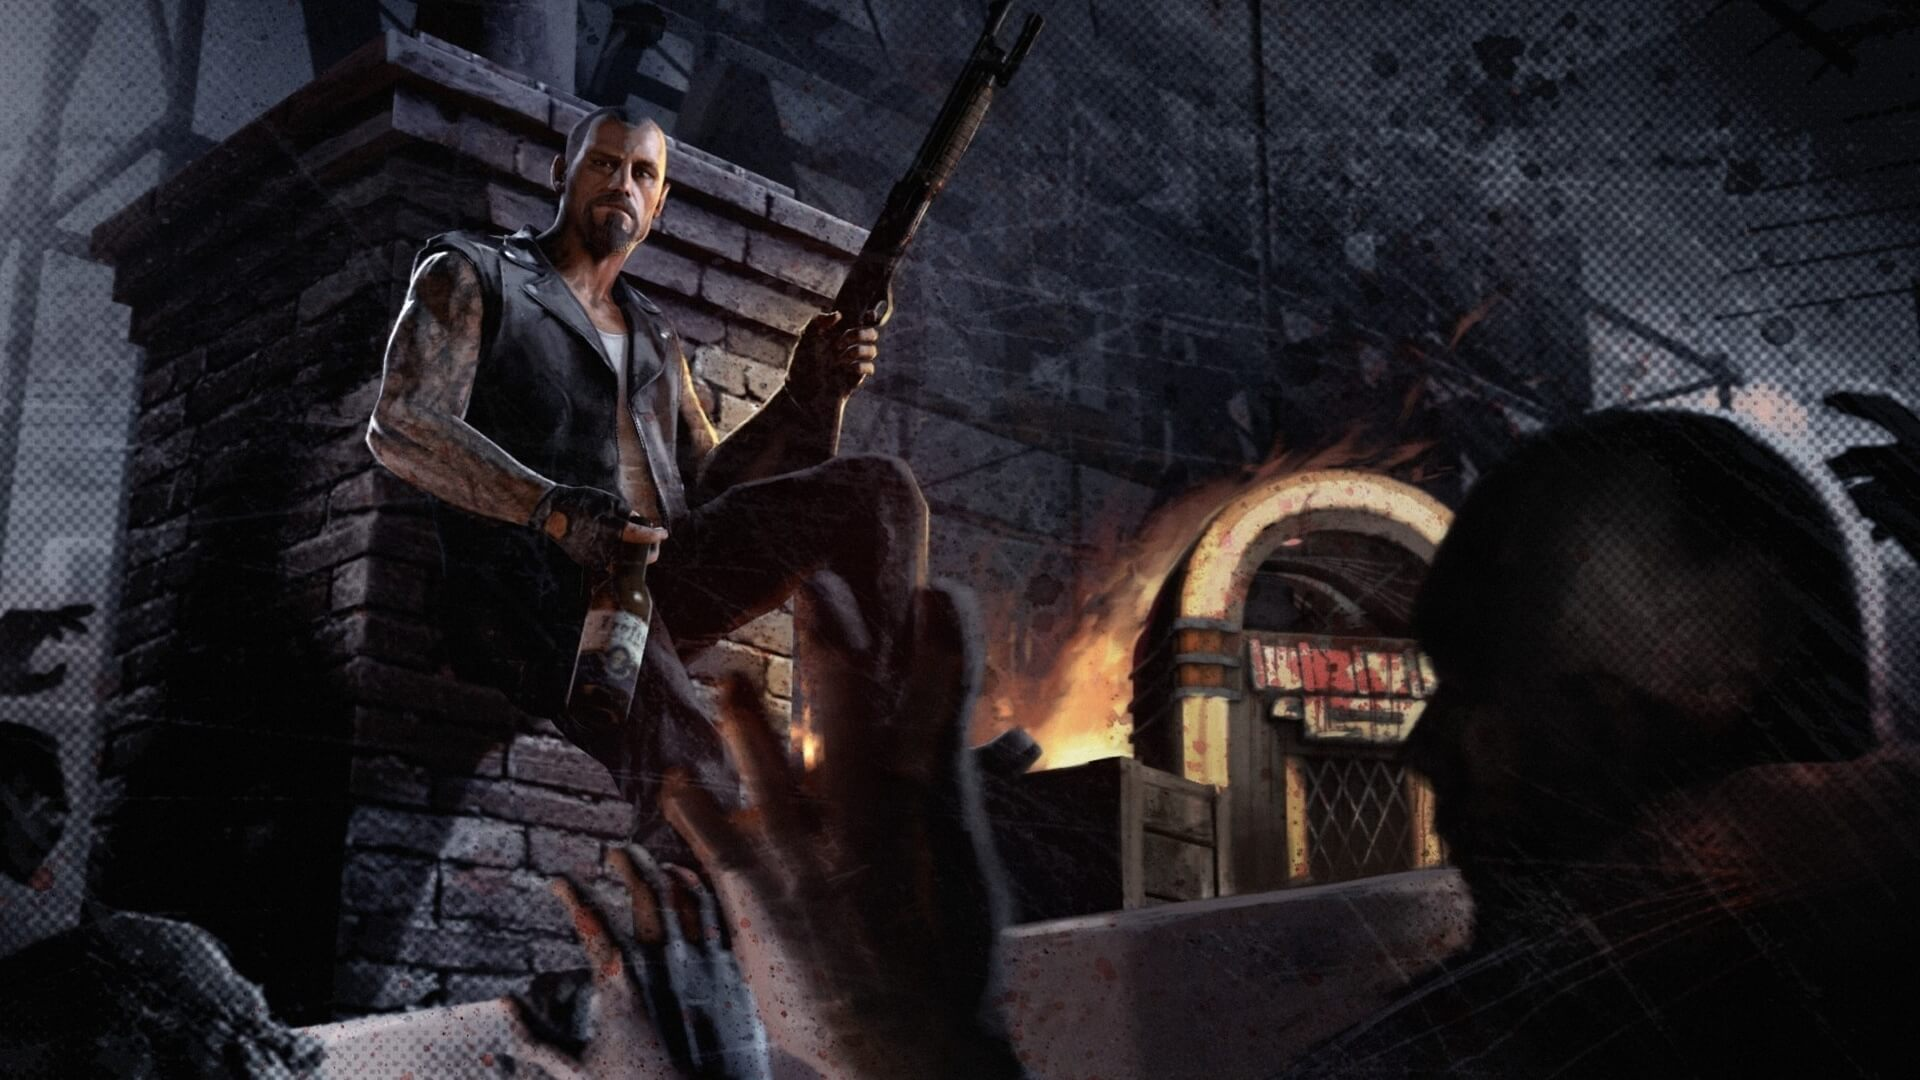 Left 4 Dead 2: The Last Stand Releases September 24